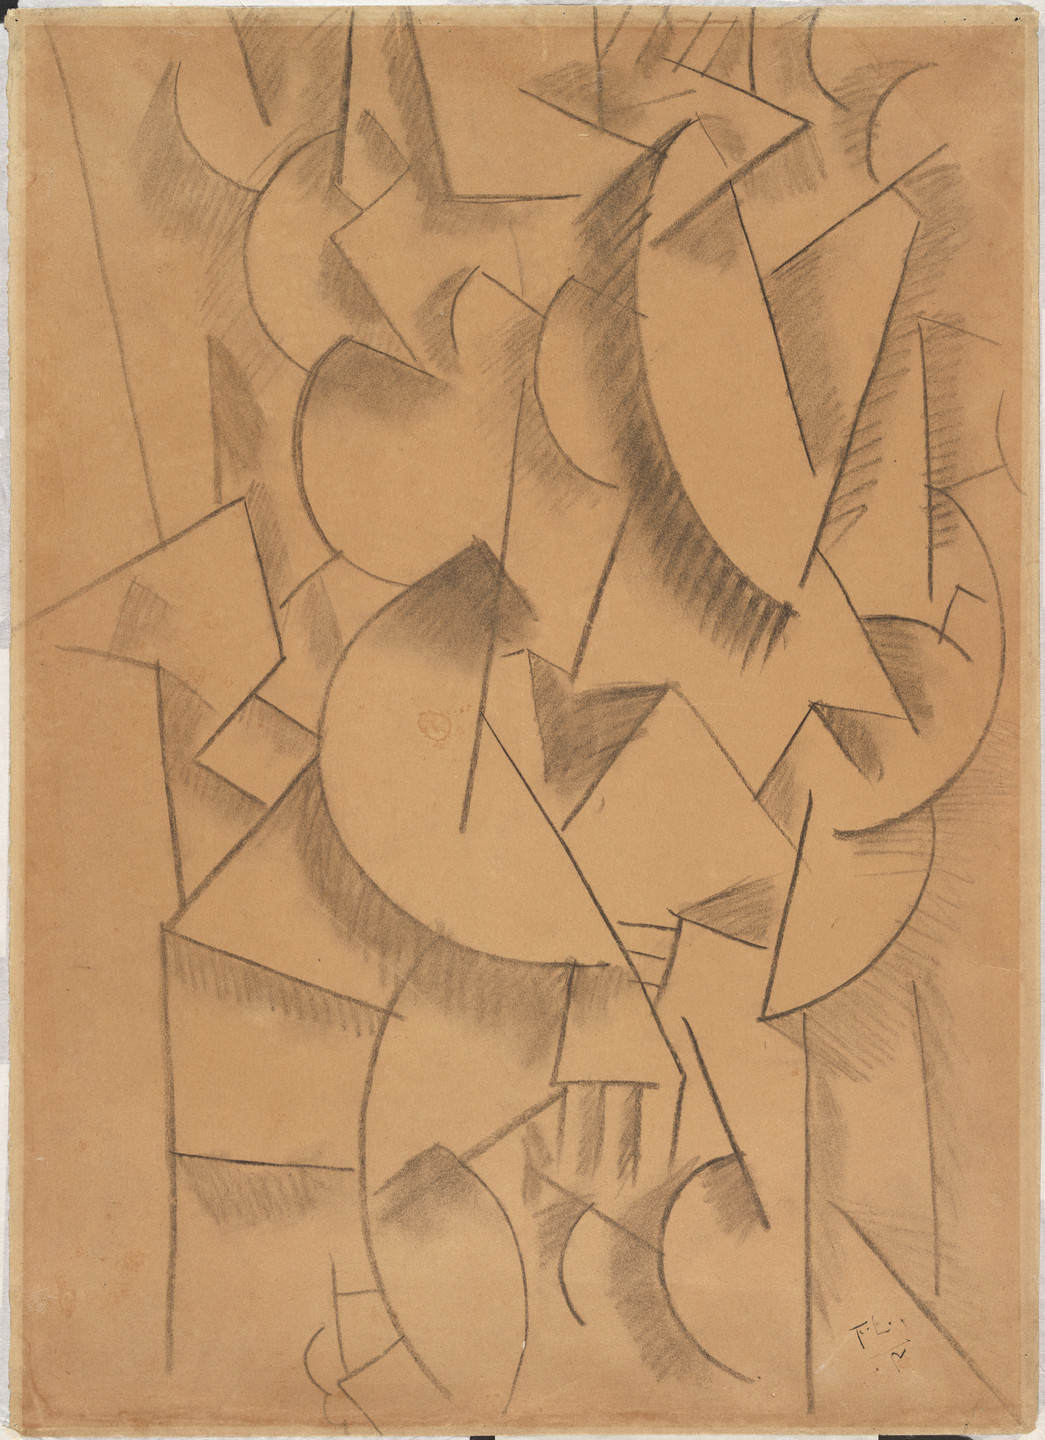 Fernand Léger. Contrast of Forms. 1912